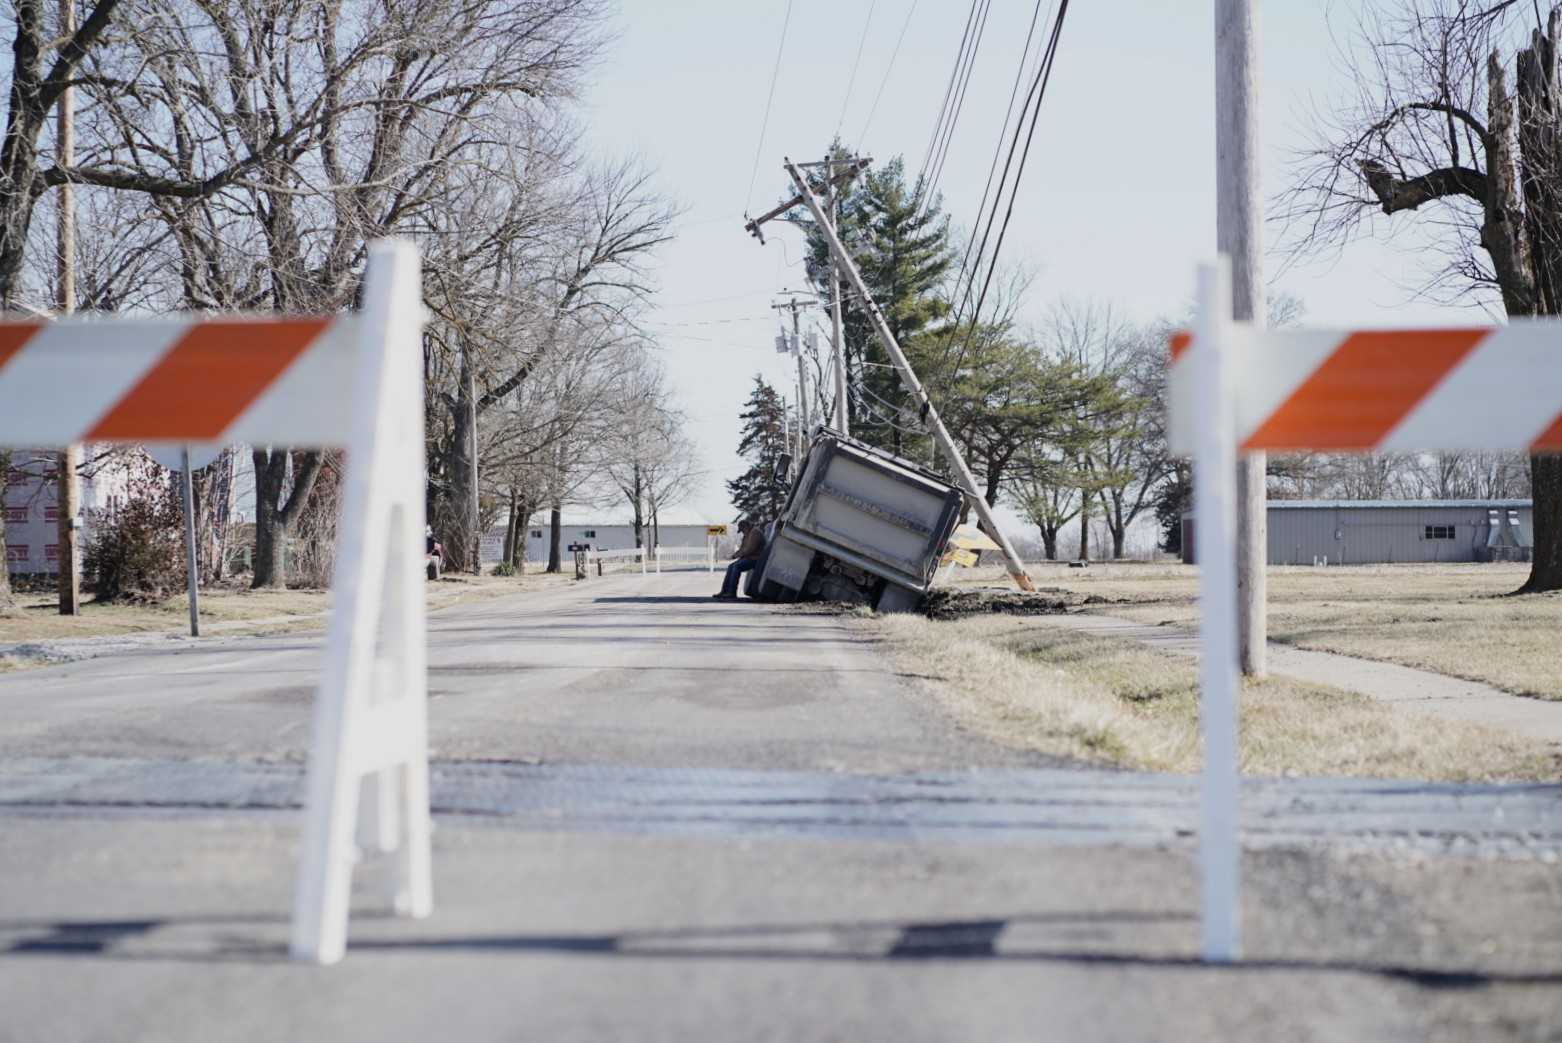 Crews closed a portion of E. Highway OO Tuesday afternoon after a dump truck crashed into an electric pole.